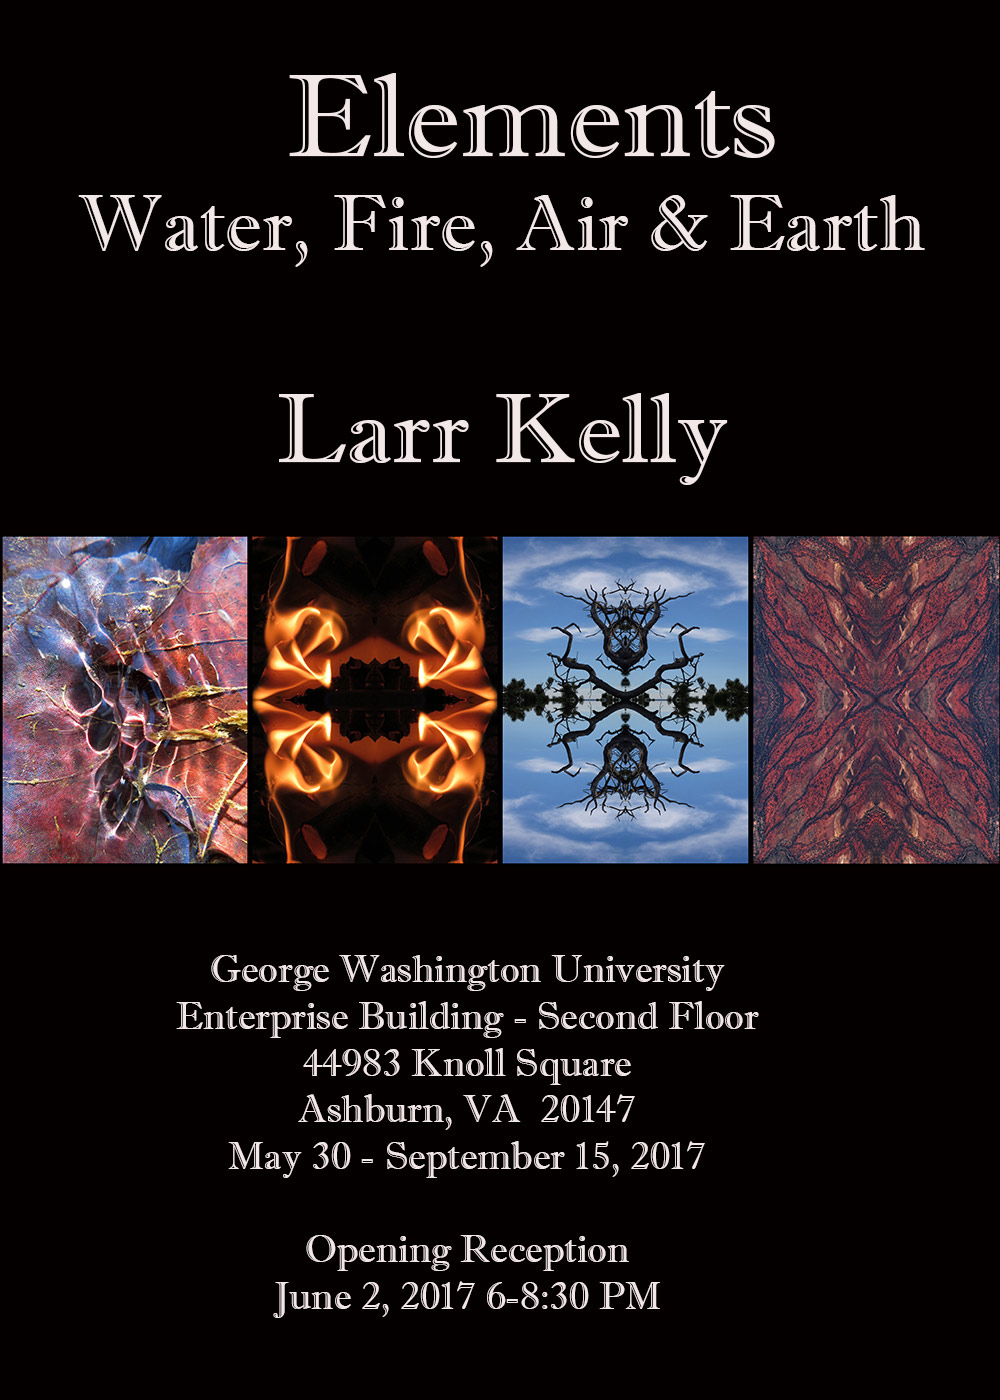 Post card for Larr Kelly at George Washington University Enterprise Building, Second Floor, 44983 Knoll Square, Ashburn, VA 20147 May 30- September 15, 2017 Opening Reception June 2, 2017 6-8:30 PM